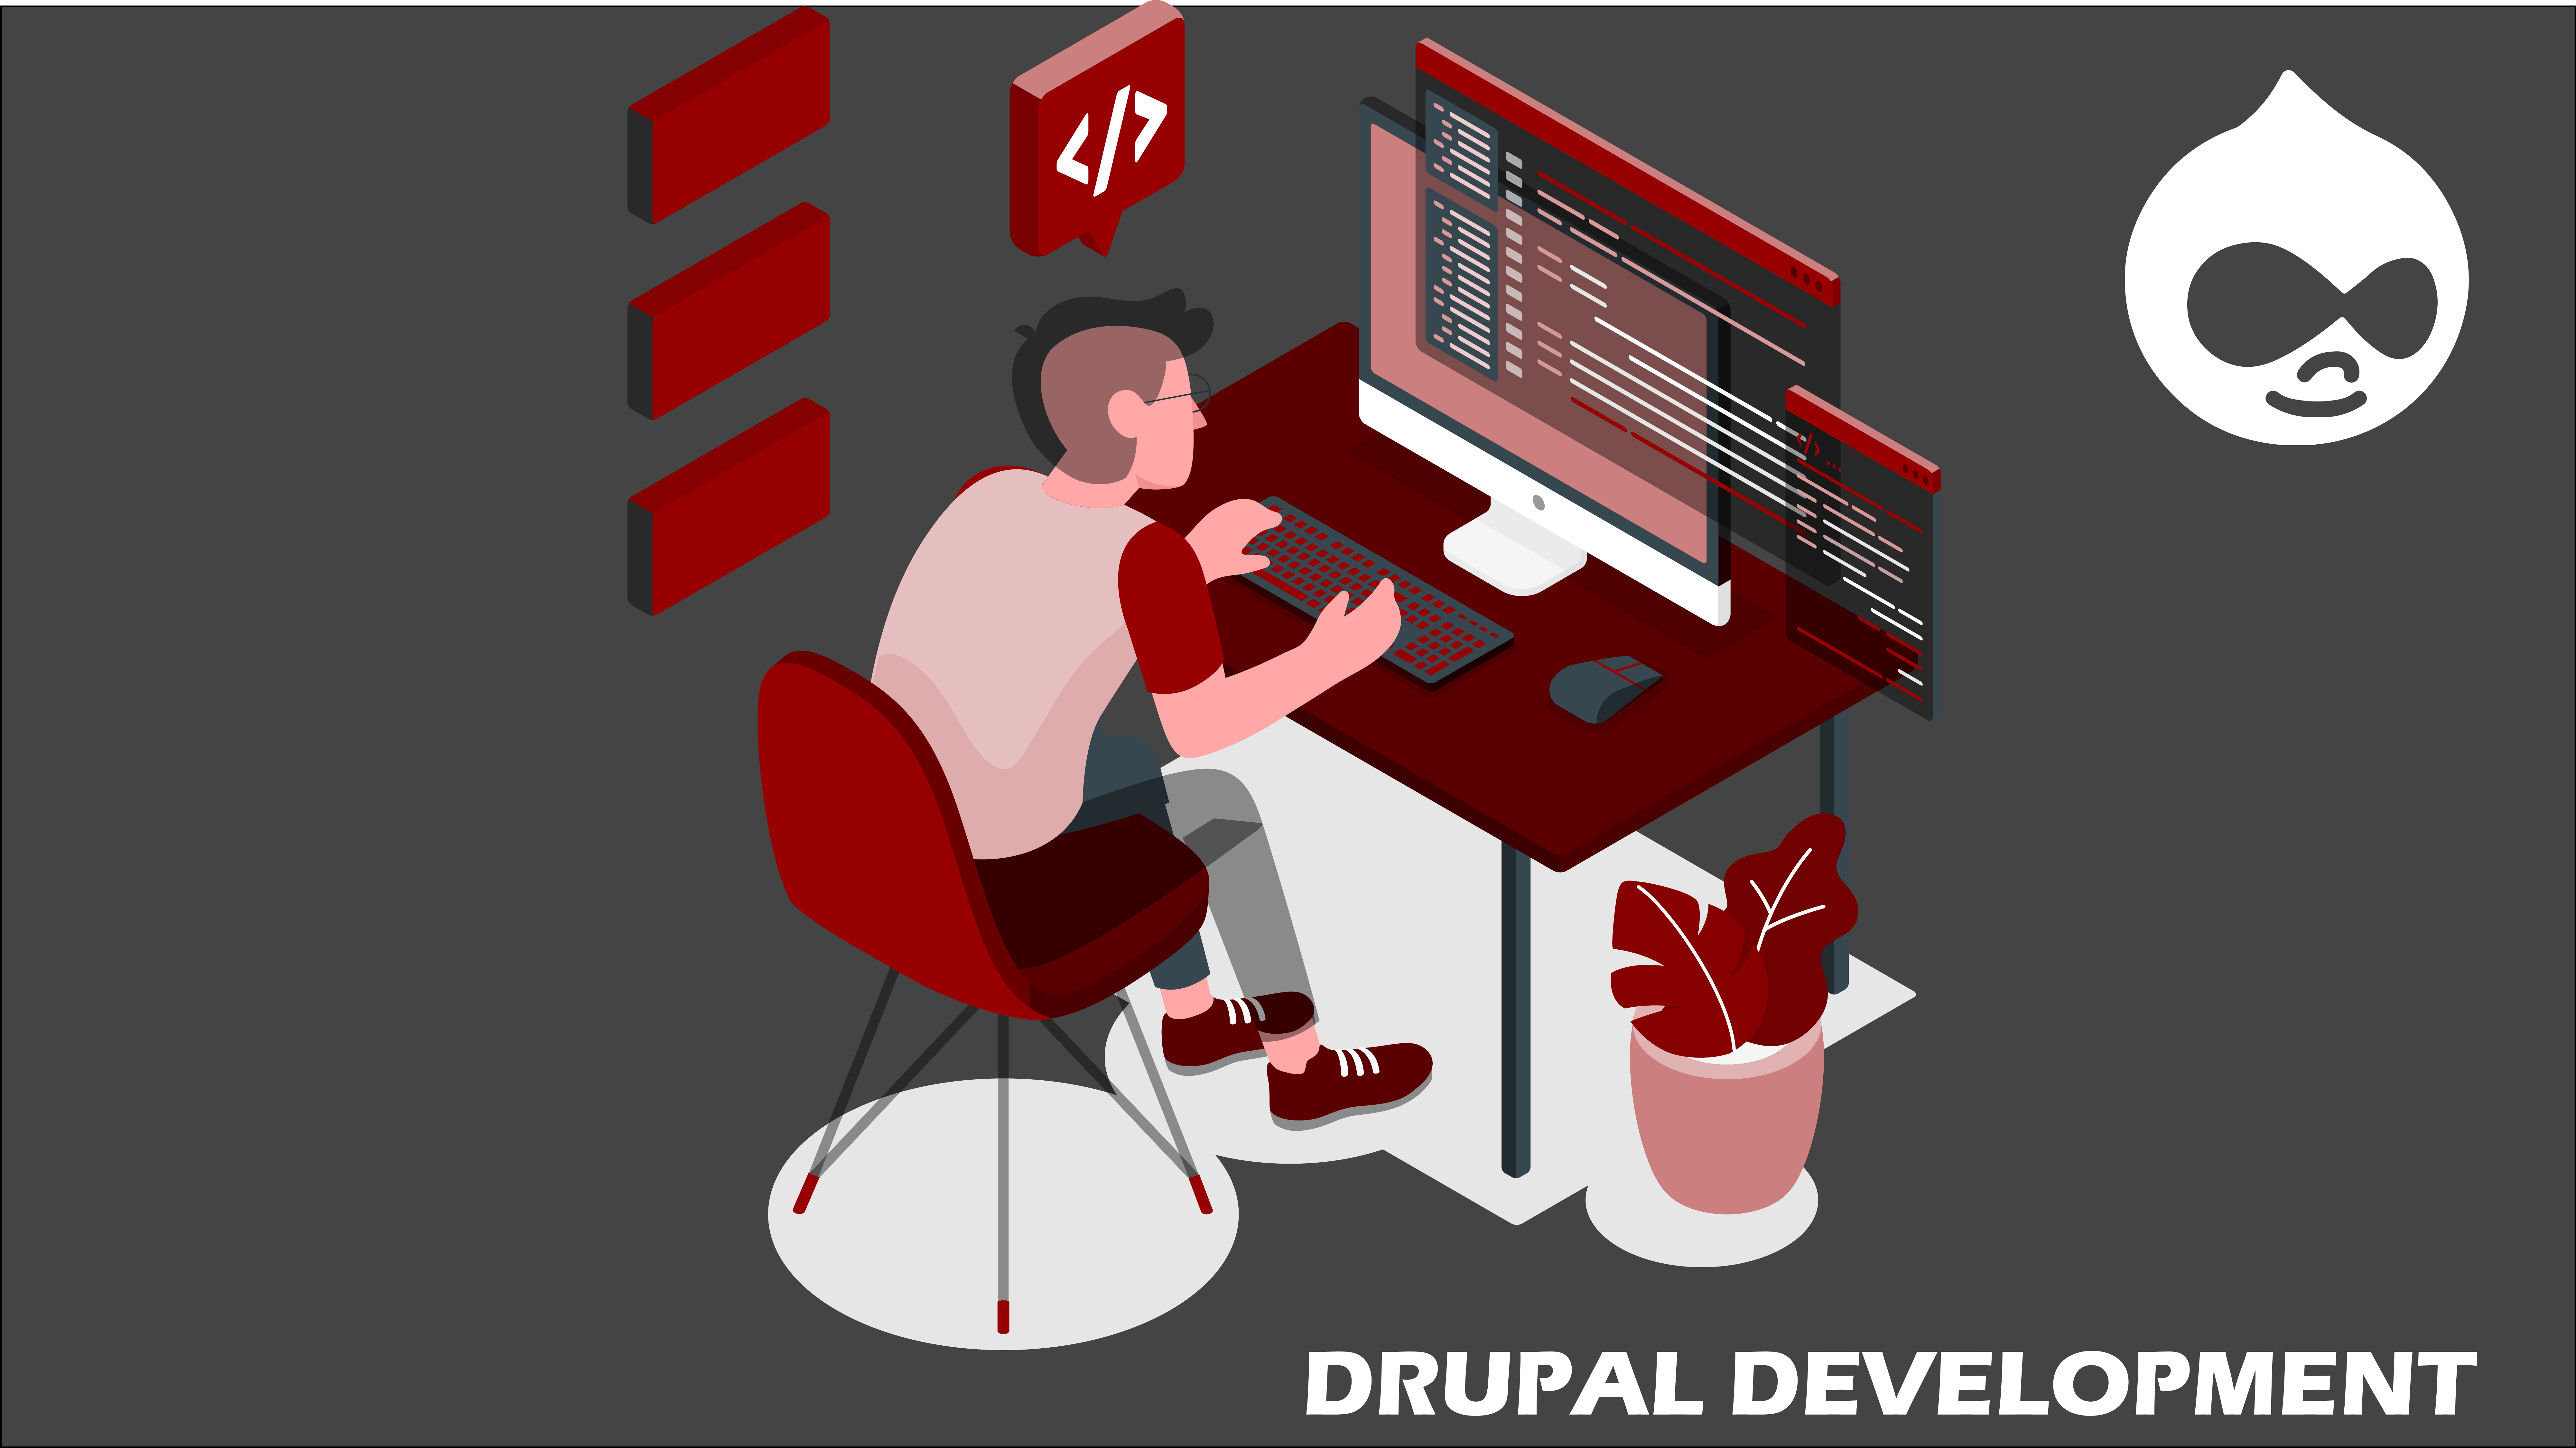 'corePHP' Drupal Development – If you are upgrading Drupal, or moving to Drupal, we can help